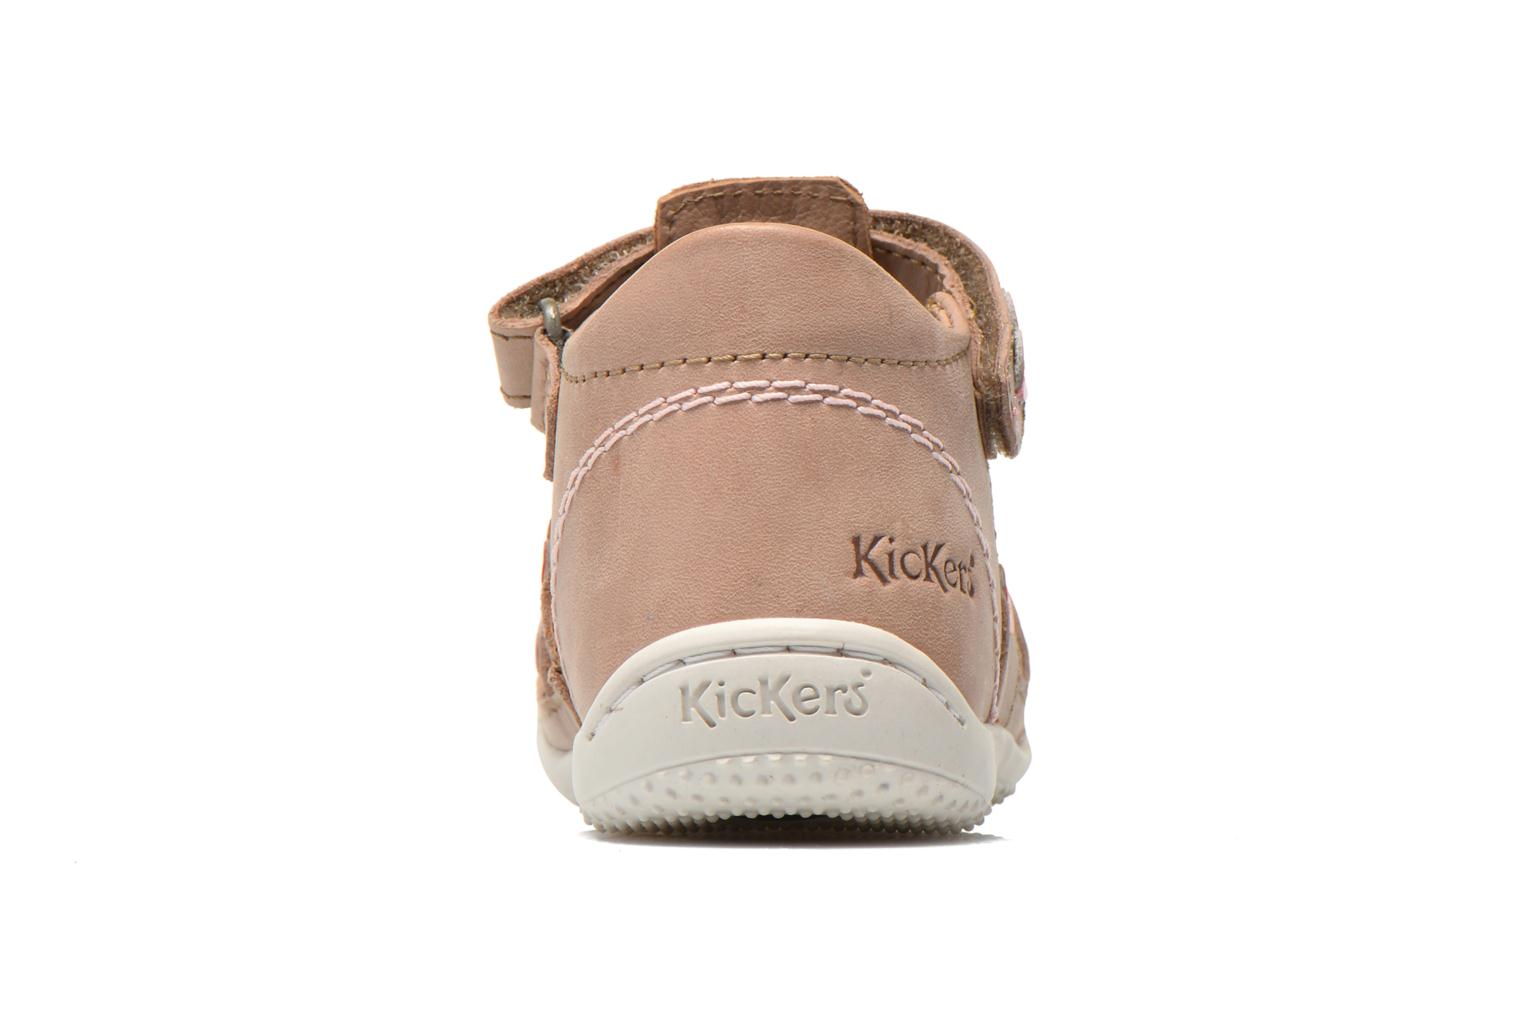 Gift Kids Beige Rose